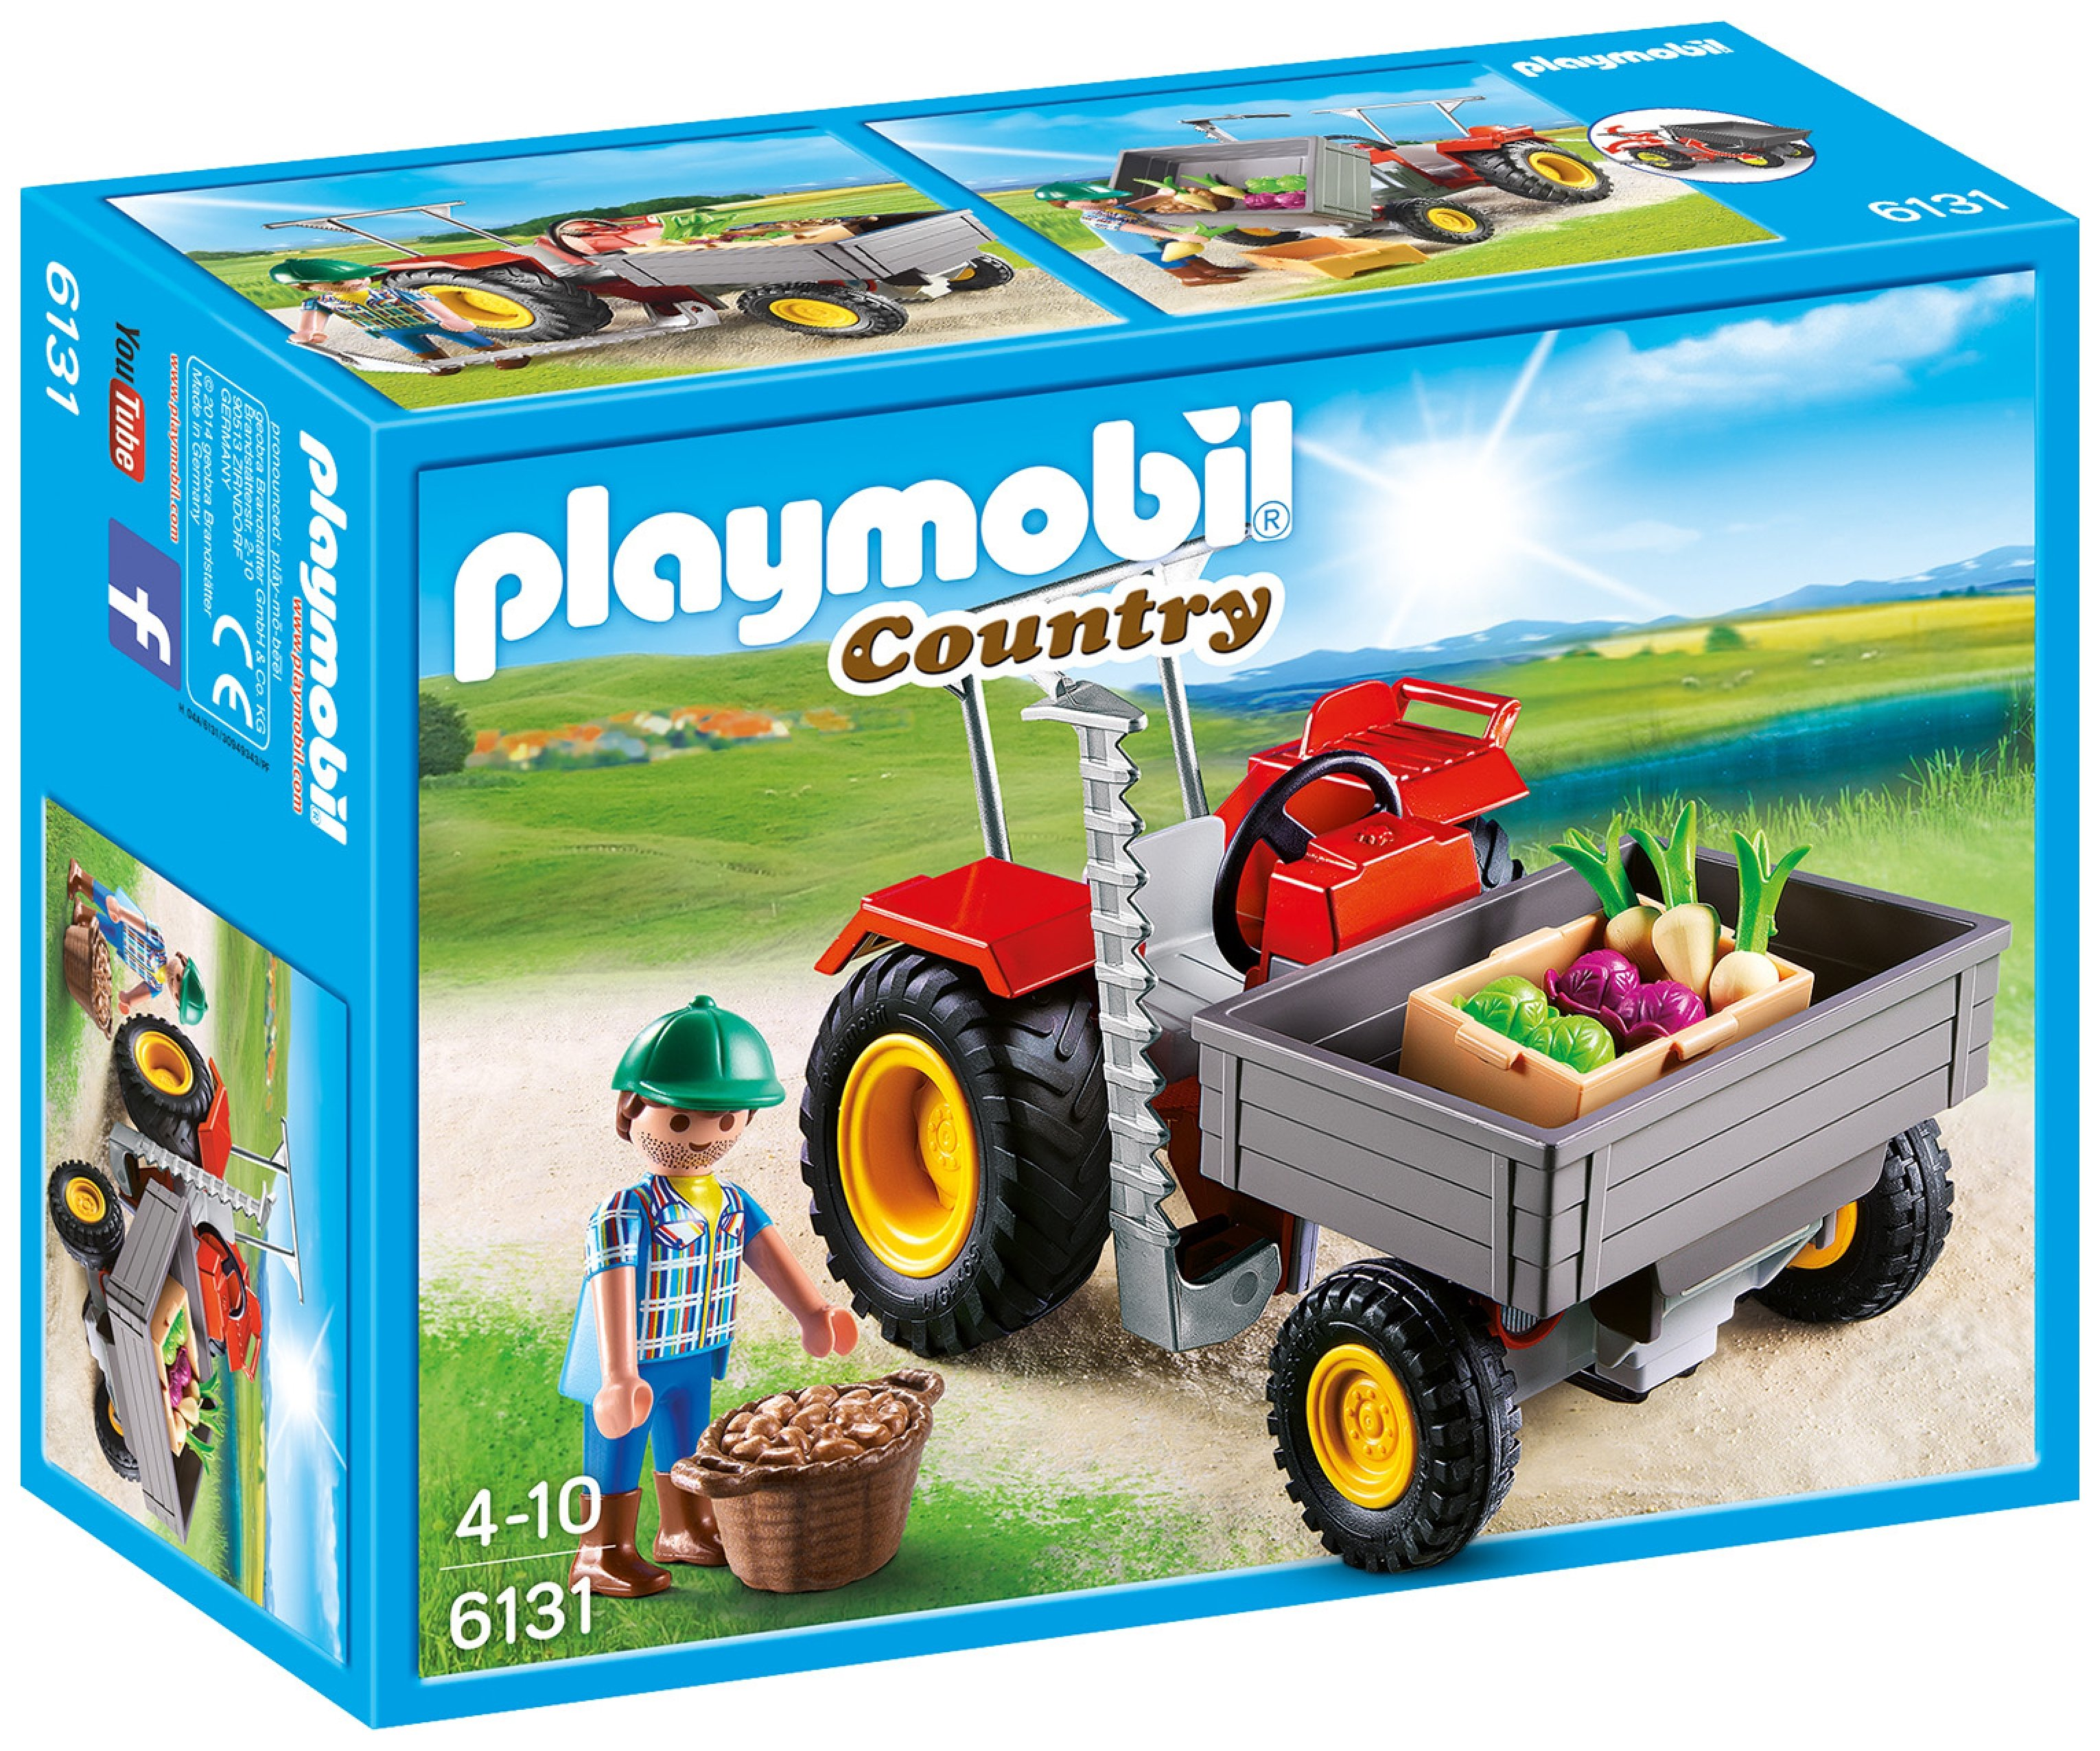 Playmobil 6131 Country Harvesting Tractor.